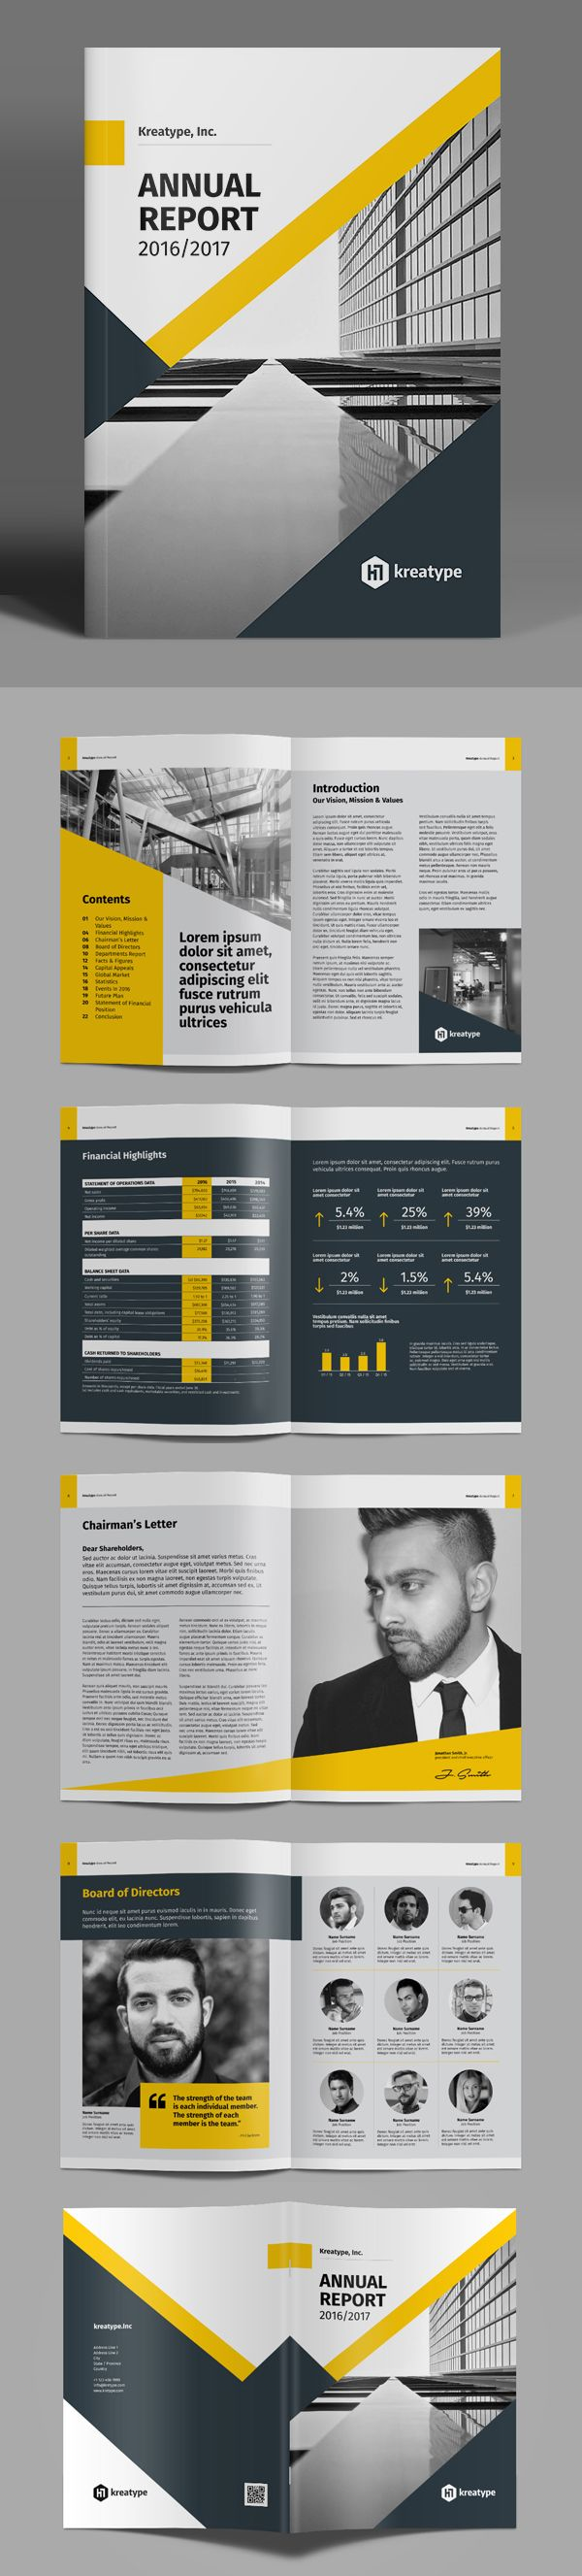 Kreatype Annual Report                                                                                                                                                                                 More